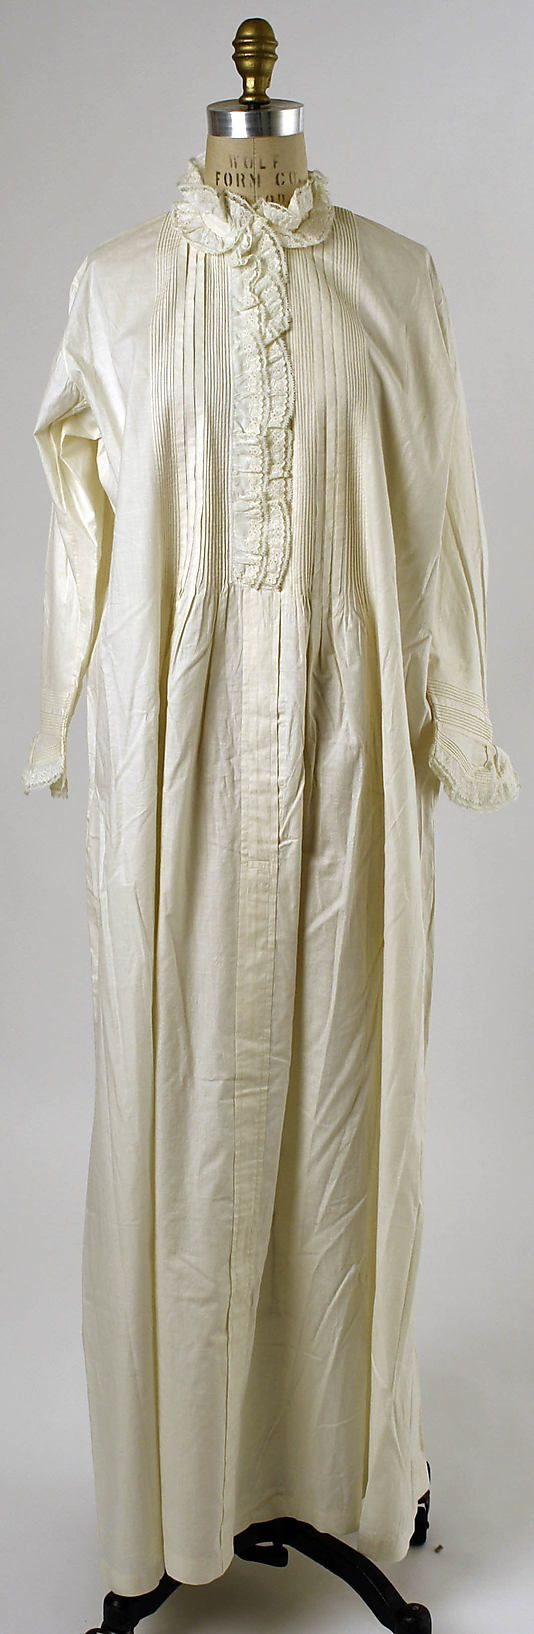 Nightgown Date: 1880s Culture: American Medium: cotton Dimensions: Length (sf): 58 in. (147.3 cm)